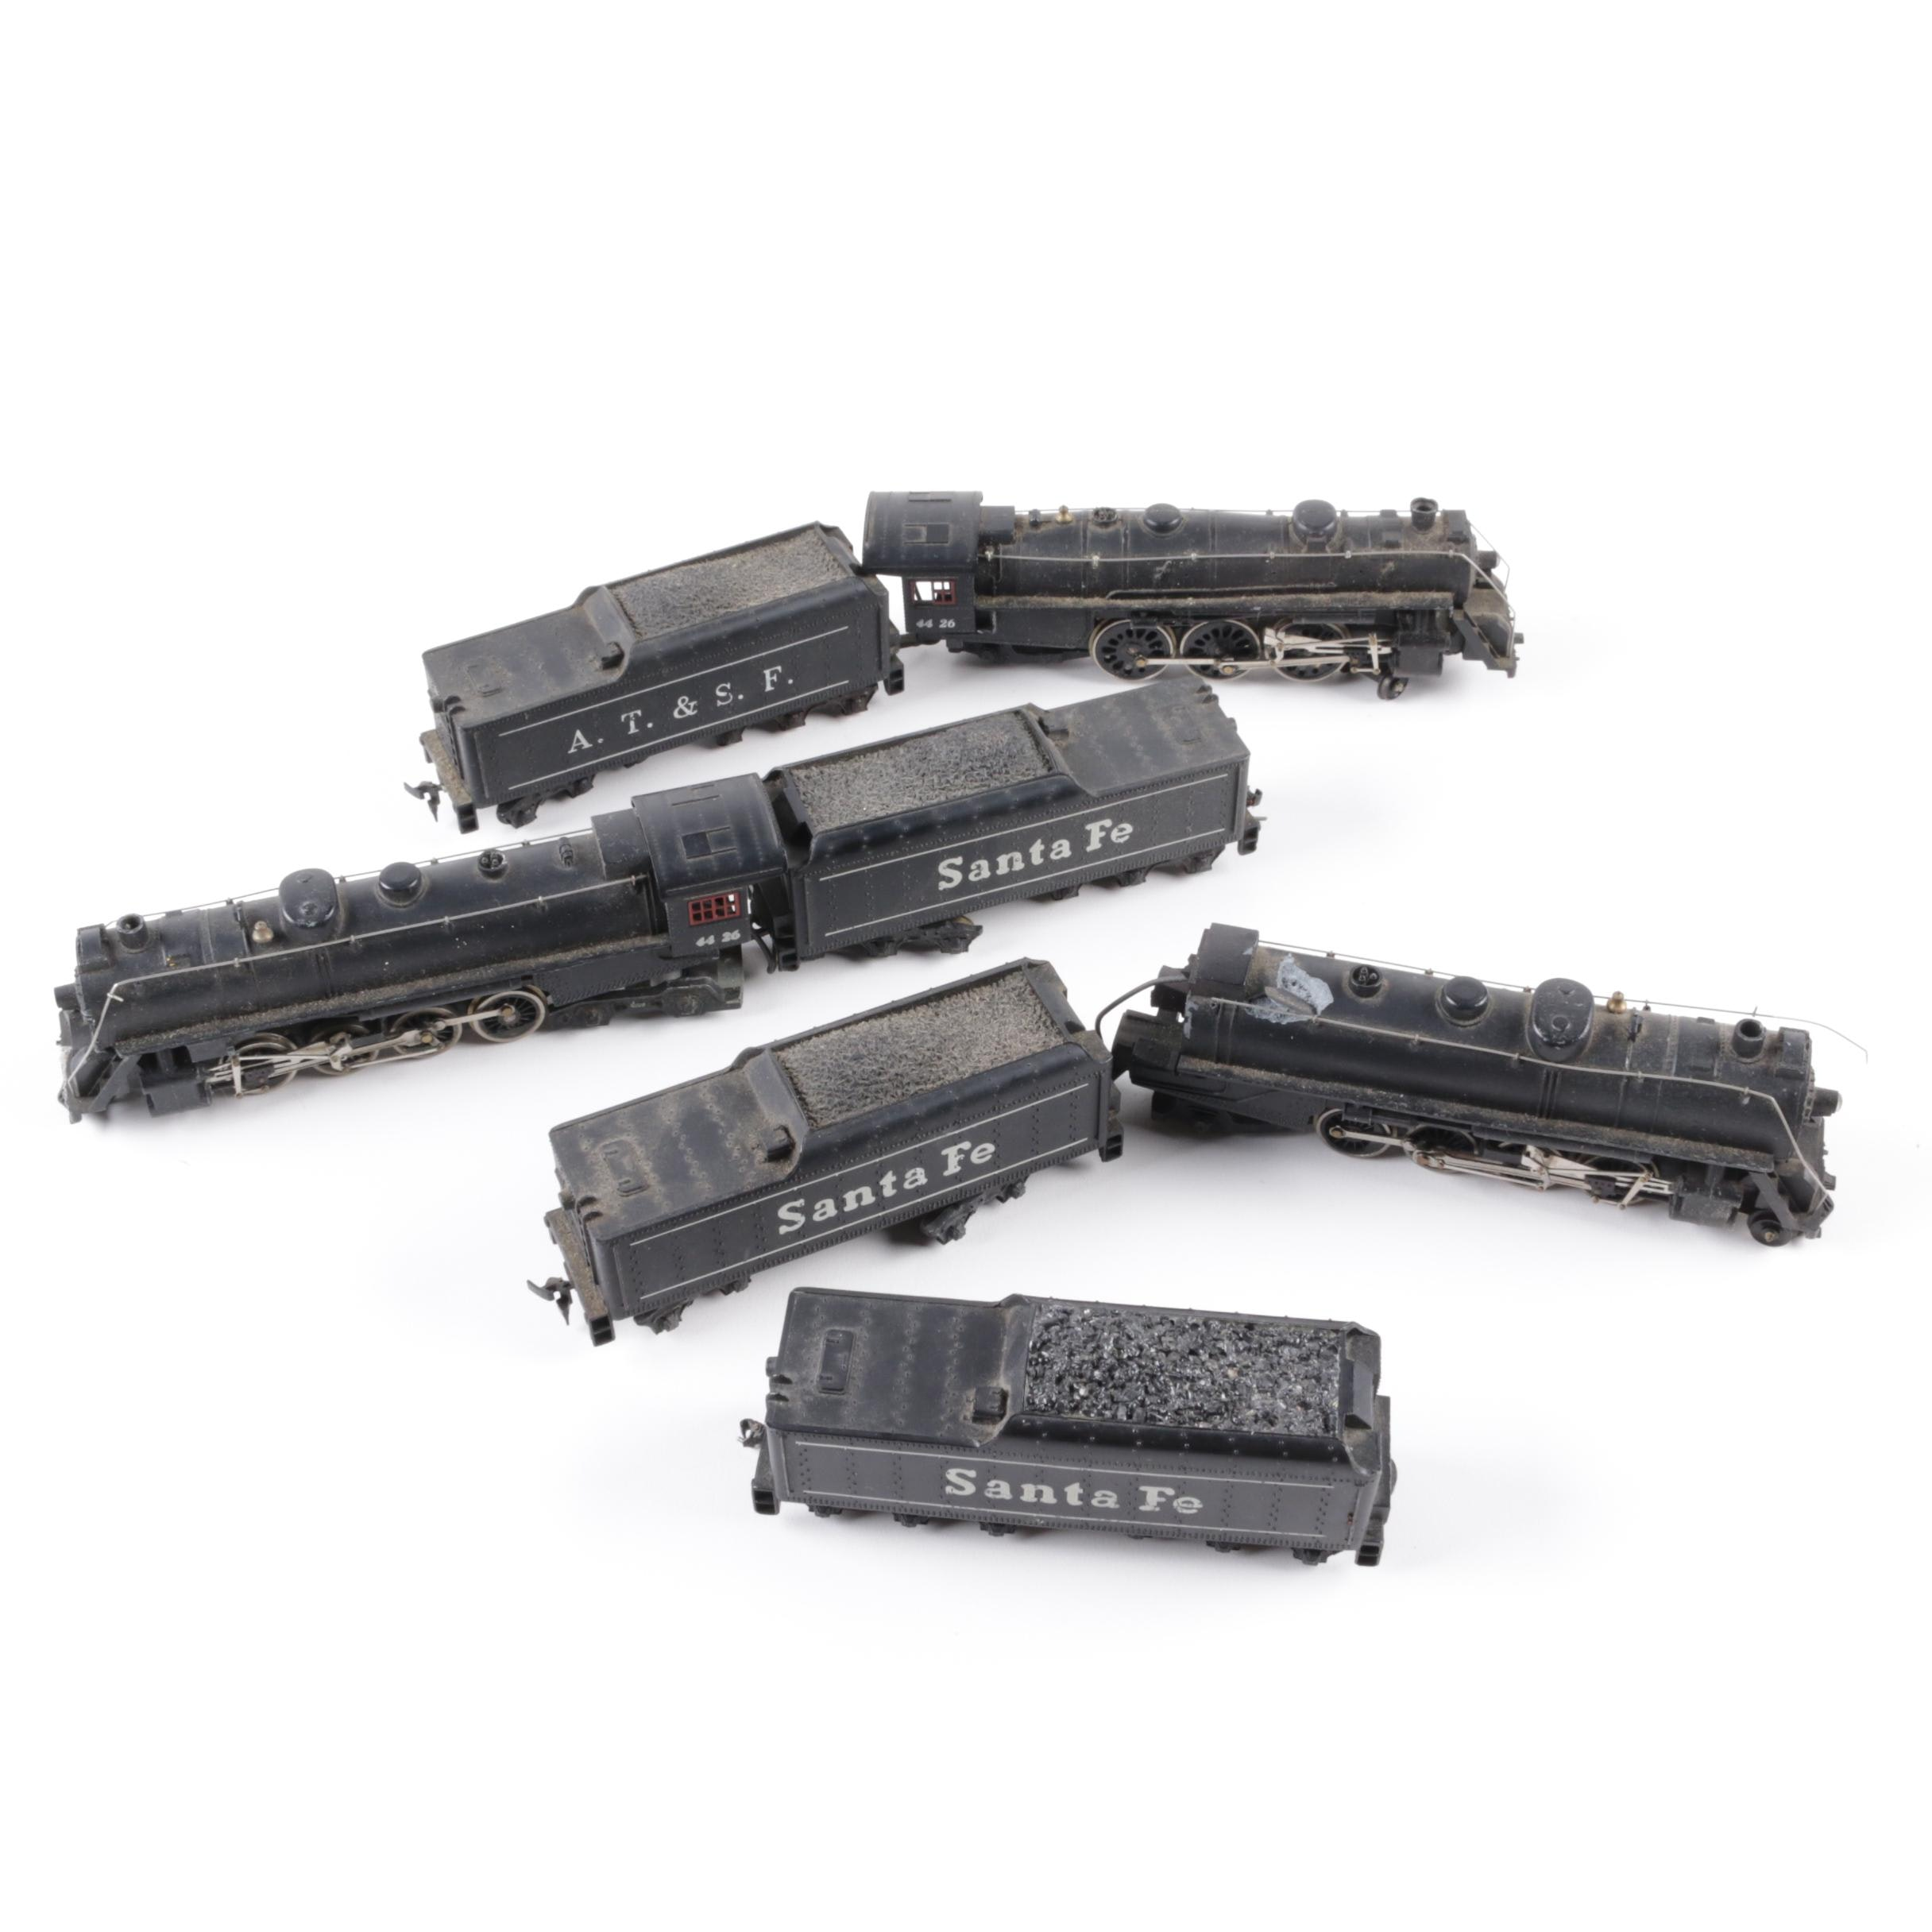 Model Atchison, Topeka and Santa Fe Engines and Cars